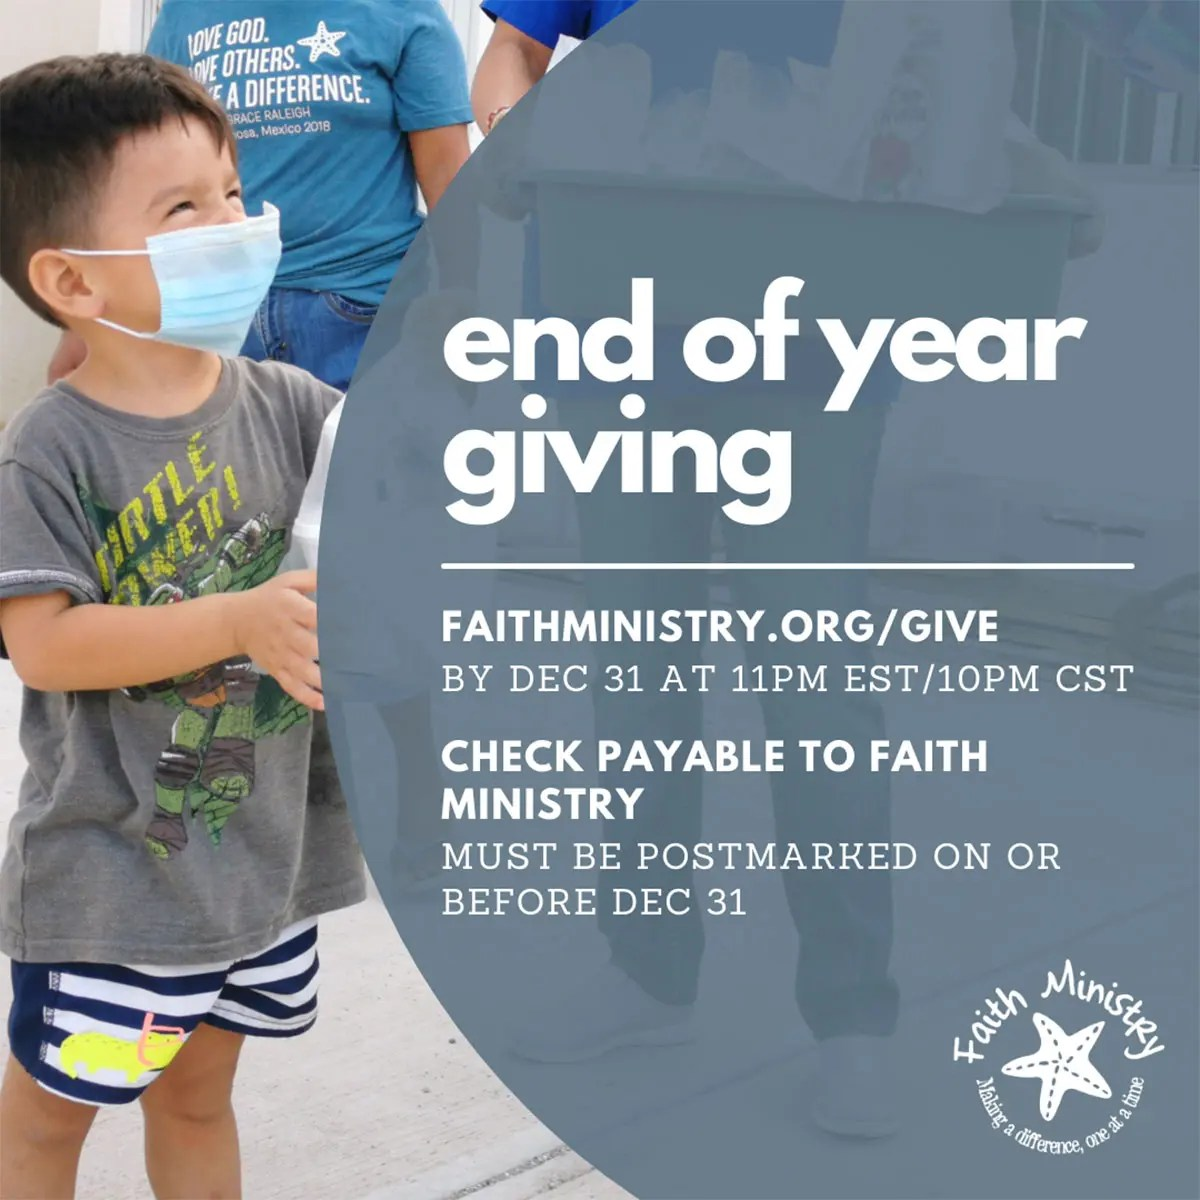 Donate by December 31 for end of year giving for 2020